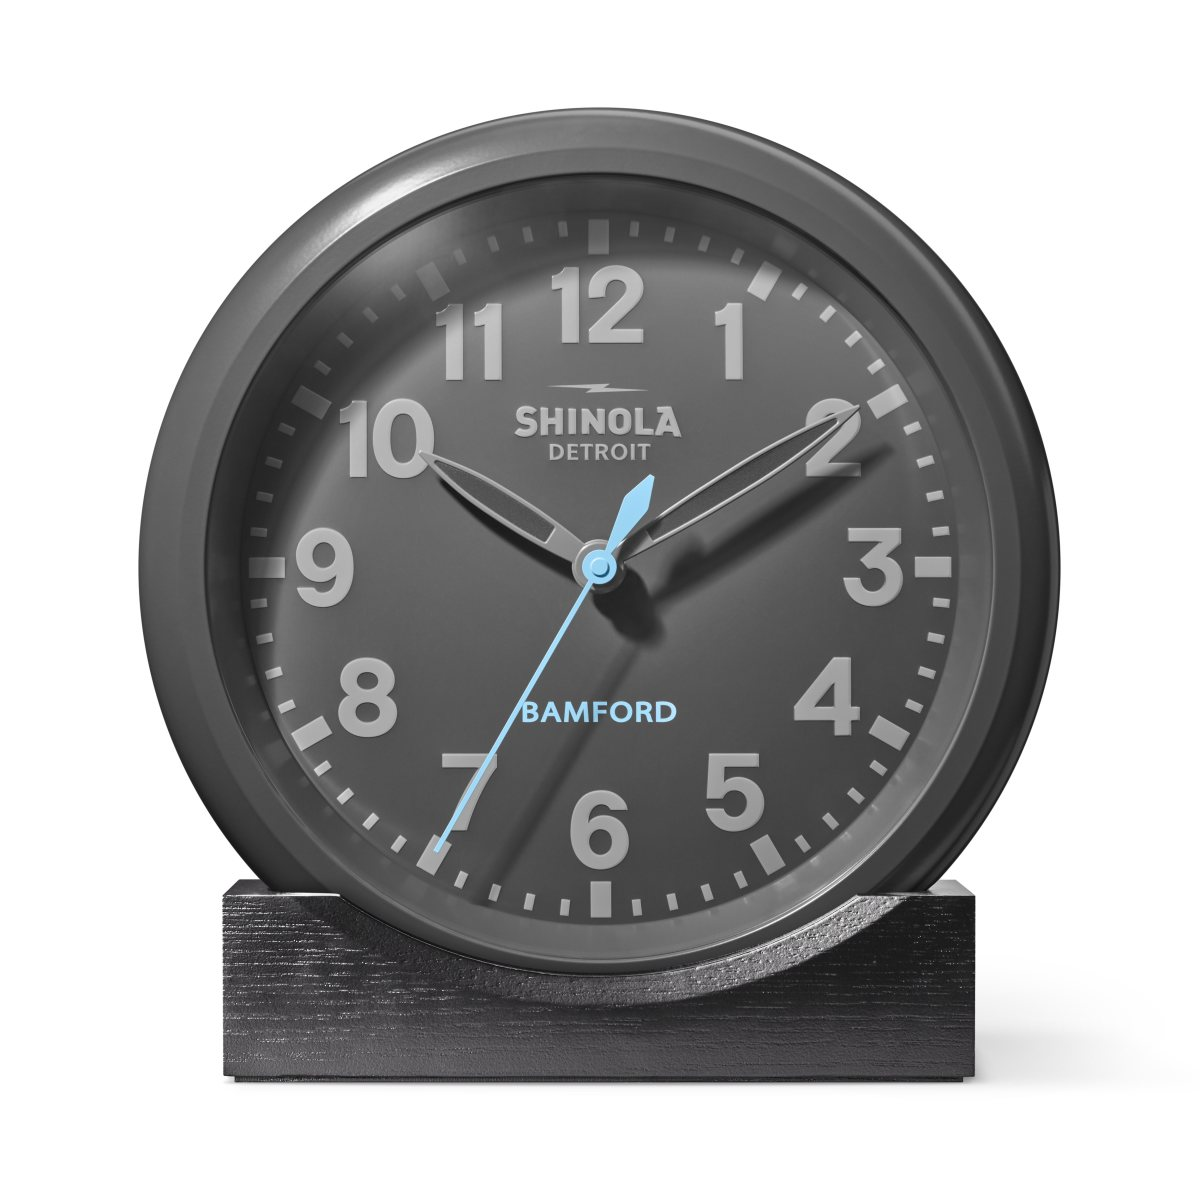 Shinola Teams Up With George Bamford On A Limited Edition